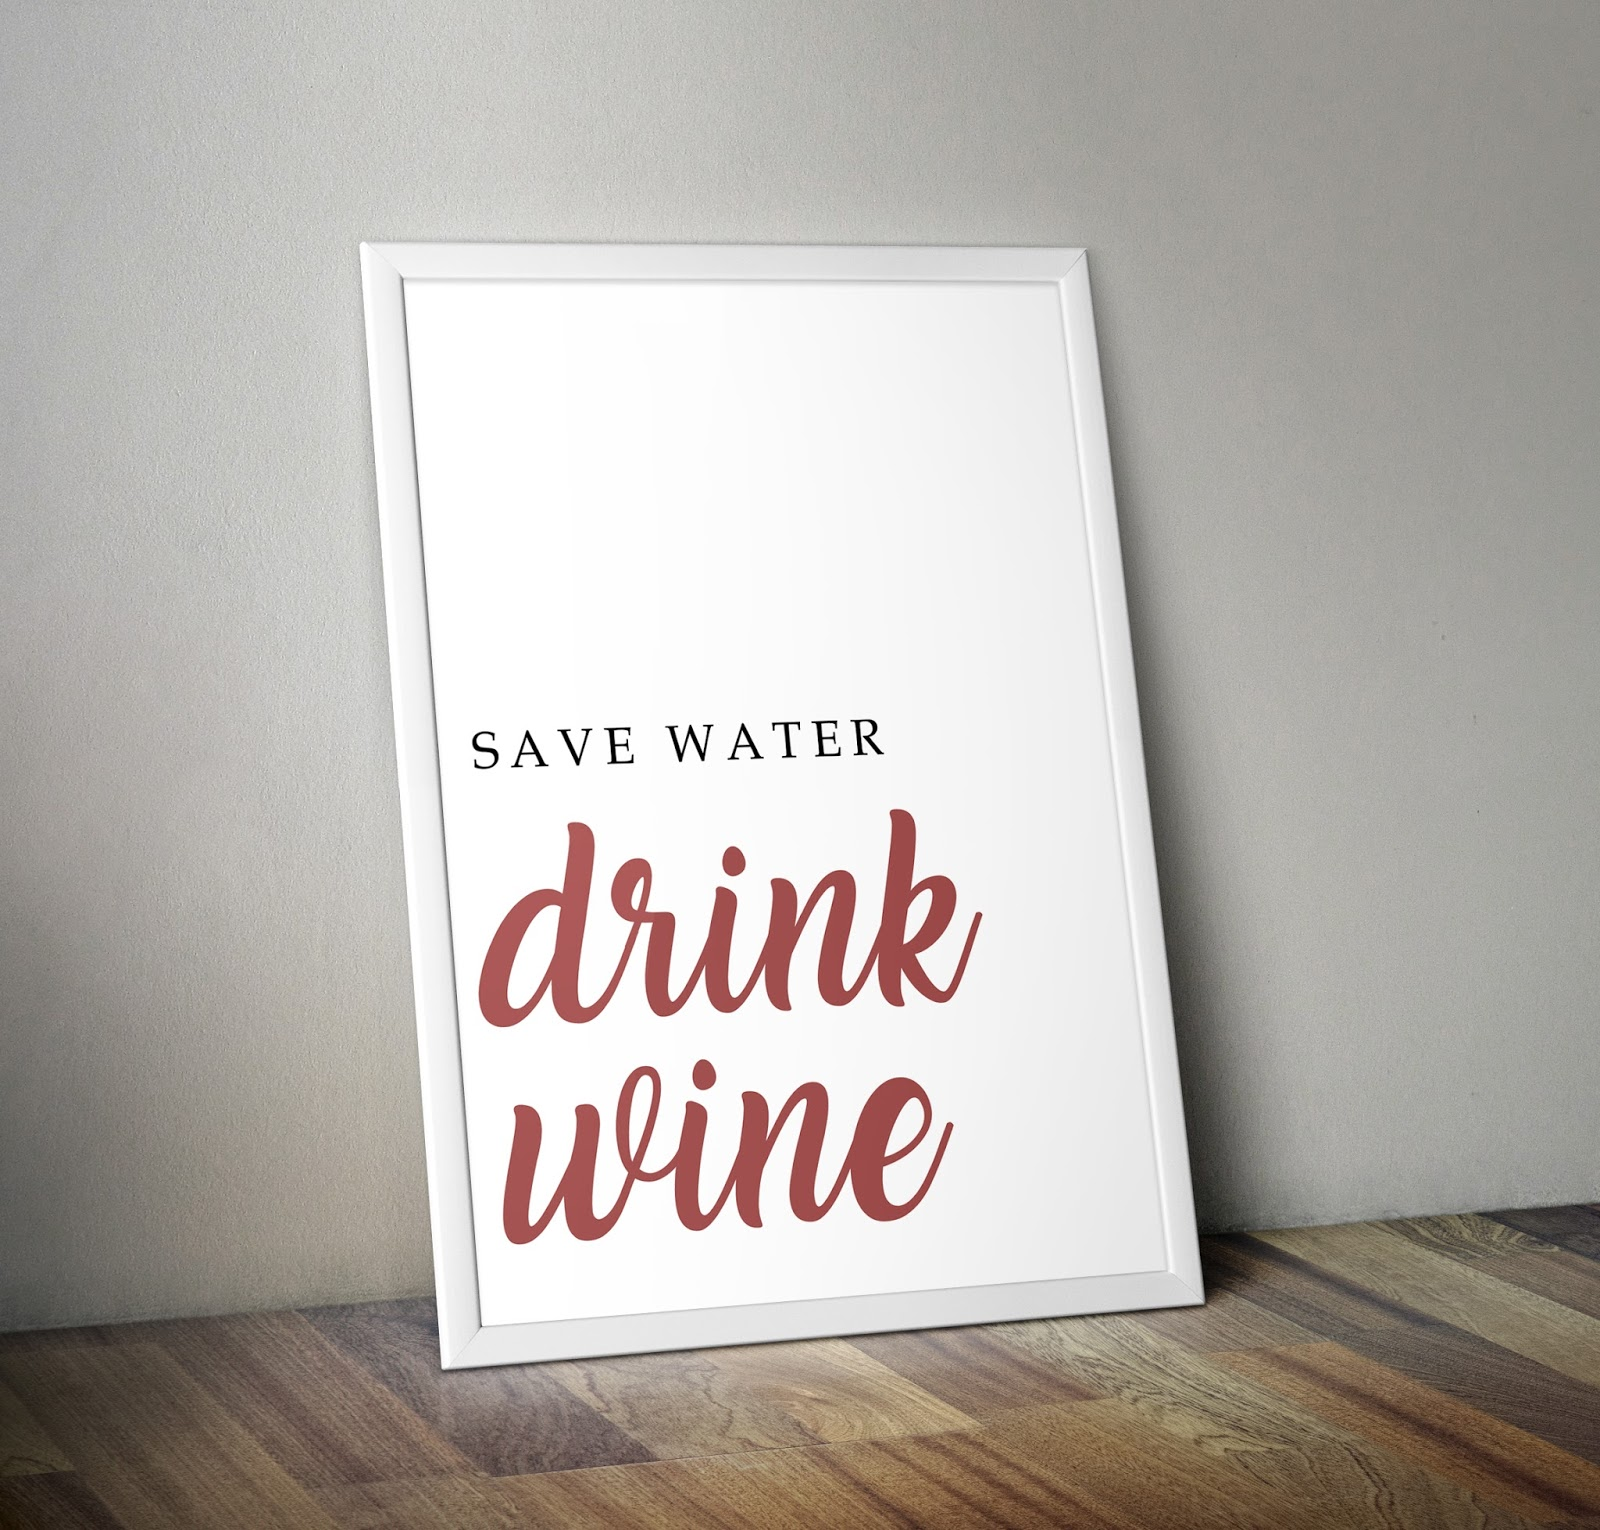 blog lifestyle, darmowy plakat, grafika do druku, darmowa grafika, printable poster, free printable poster, free wall art, download wall art, save water drink champagne, thedailywonders, najlepszy blog lifestyle